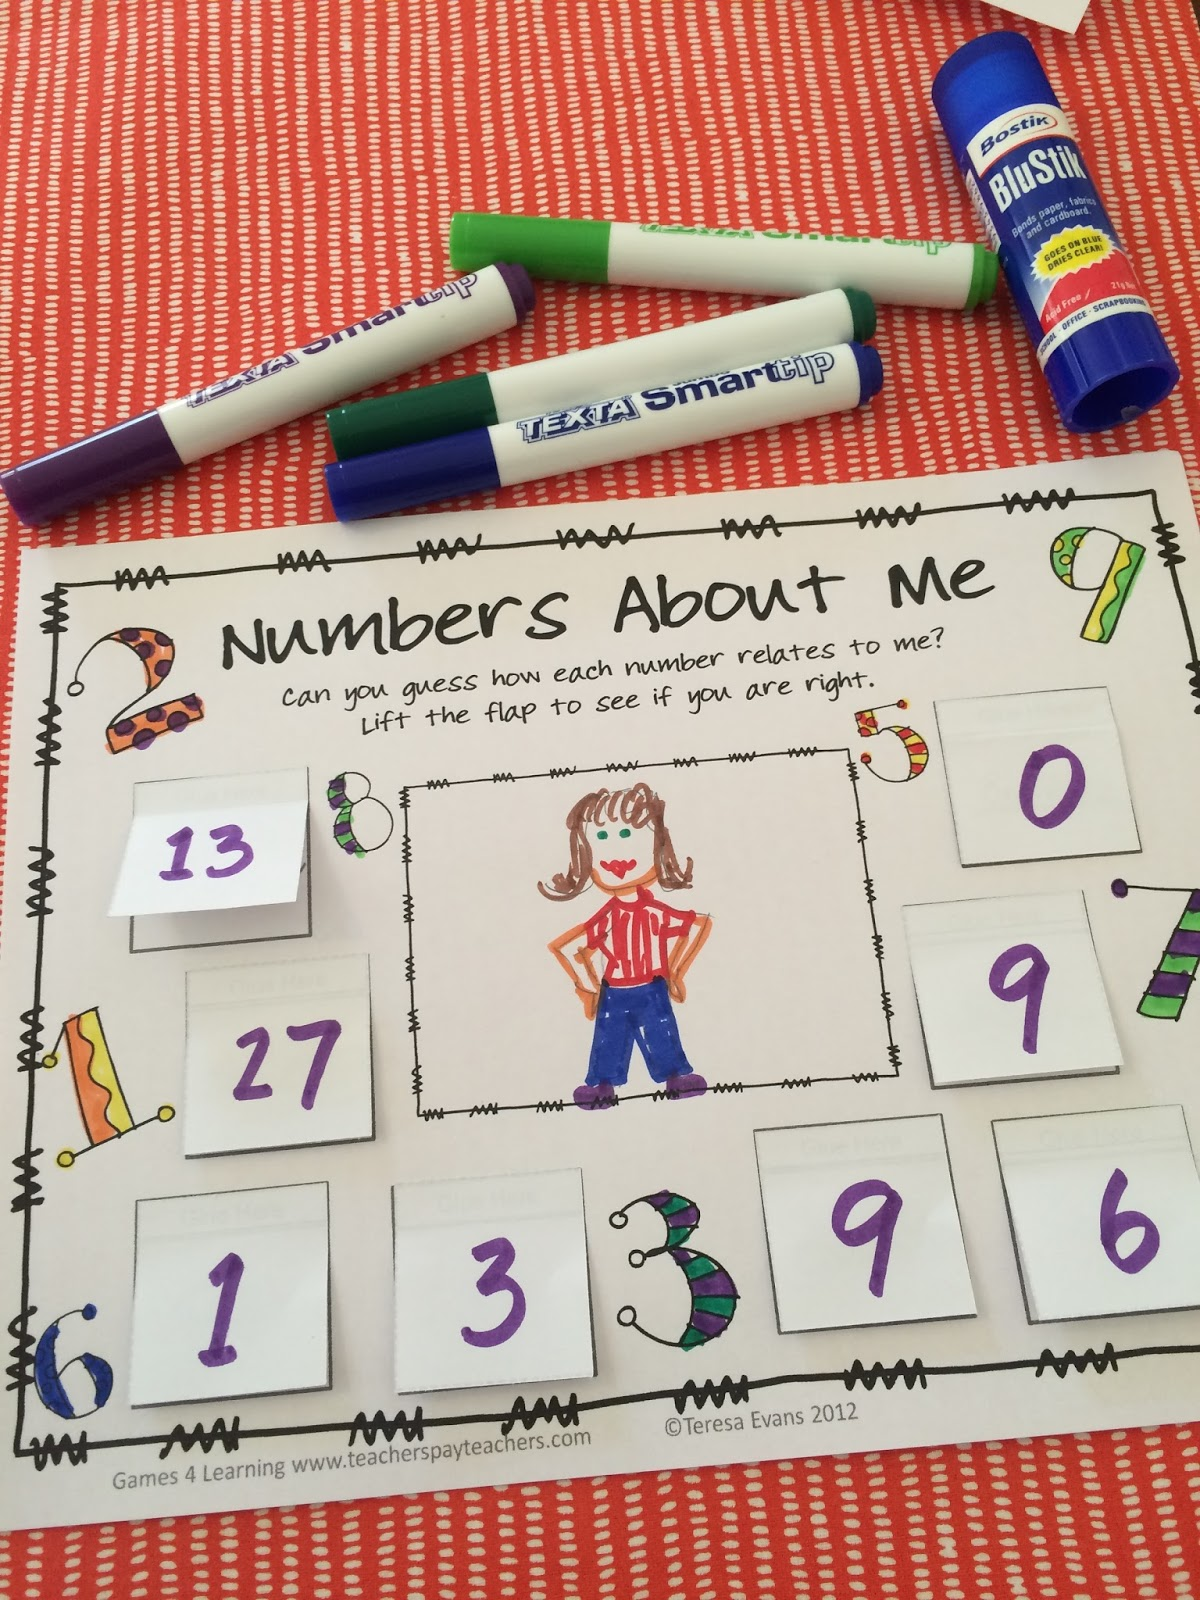 Fun Games 4 Learning August